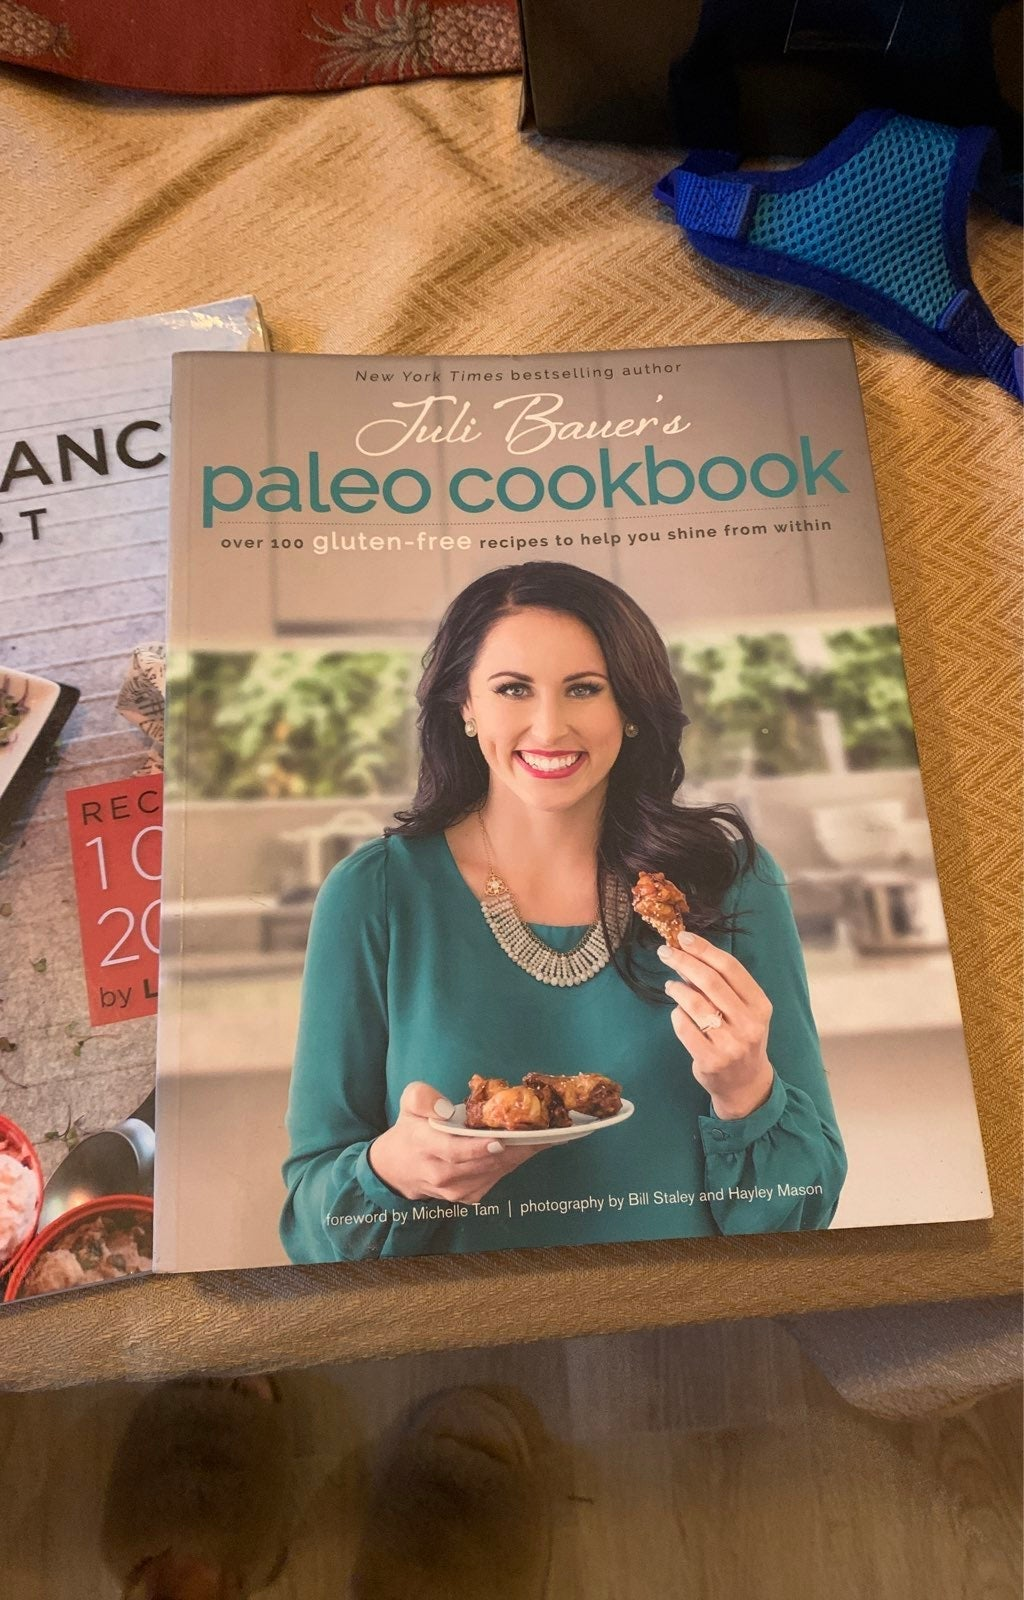 Paleo cook book and 2 others